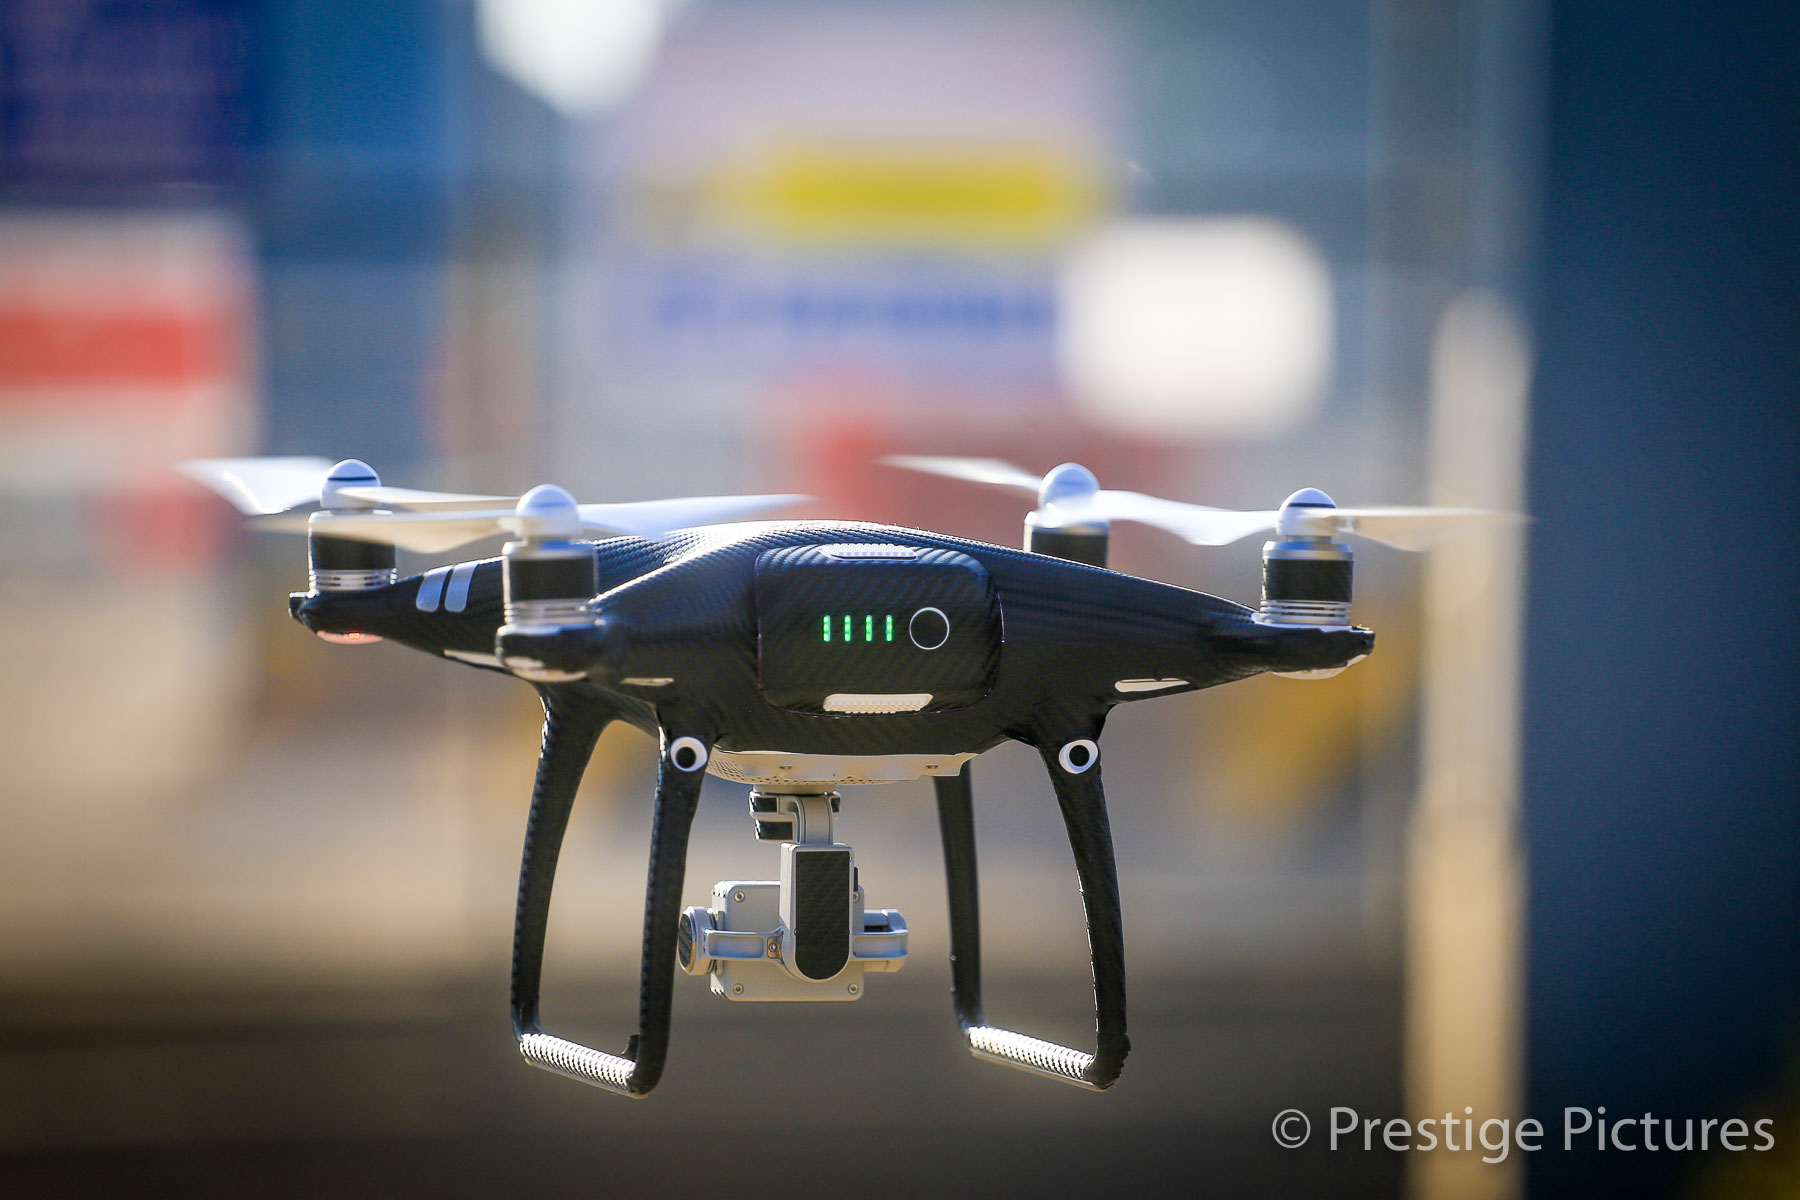 One of the Prestige Pictures drones in mid flight